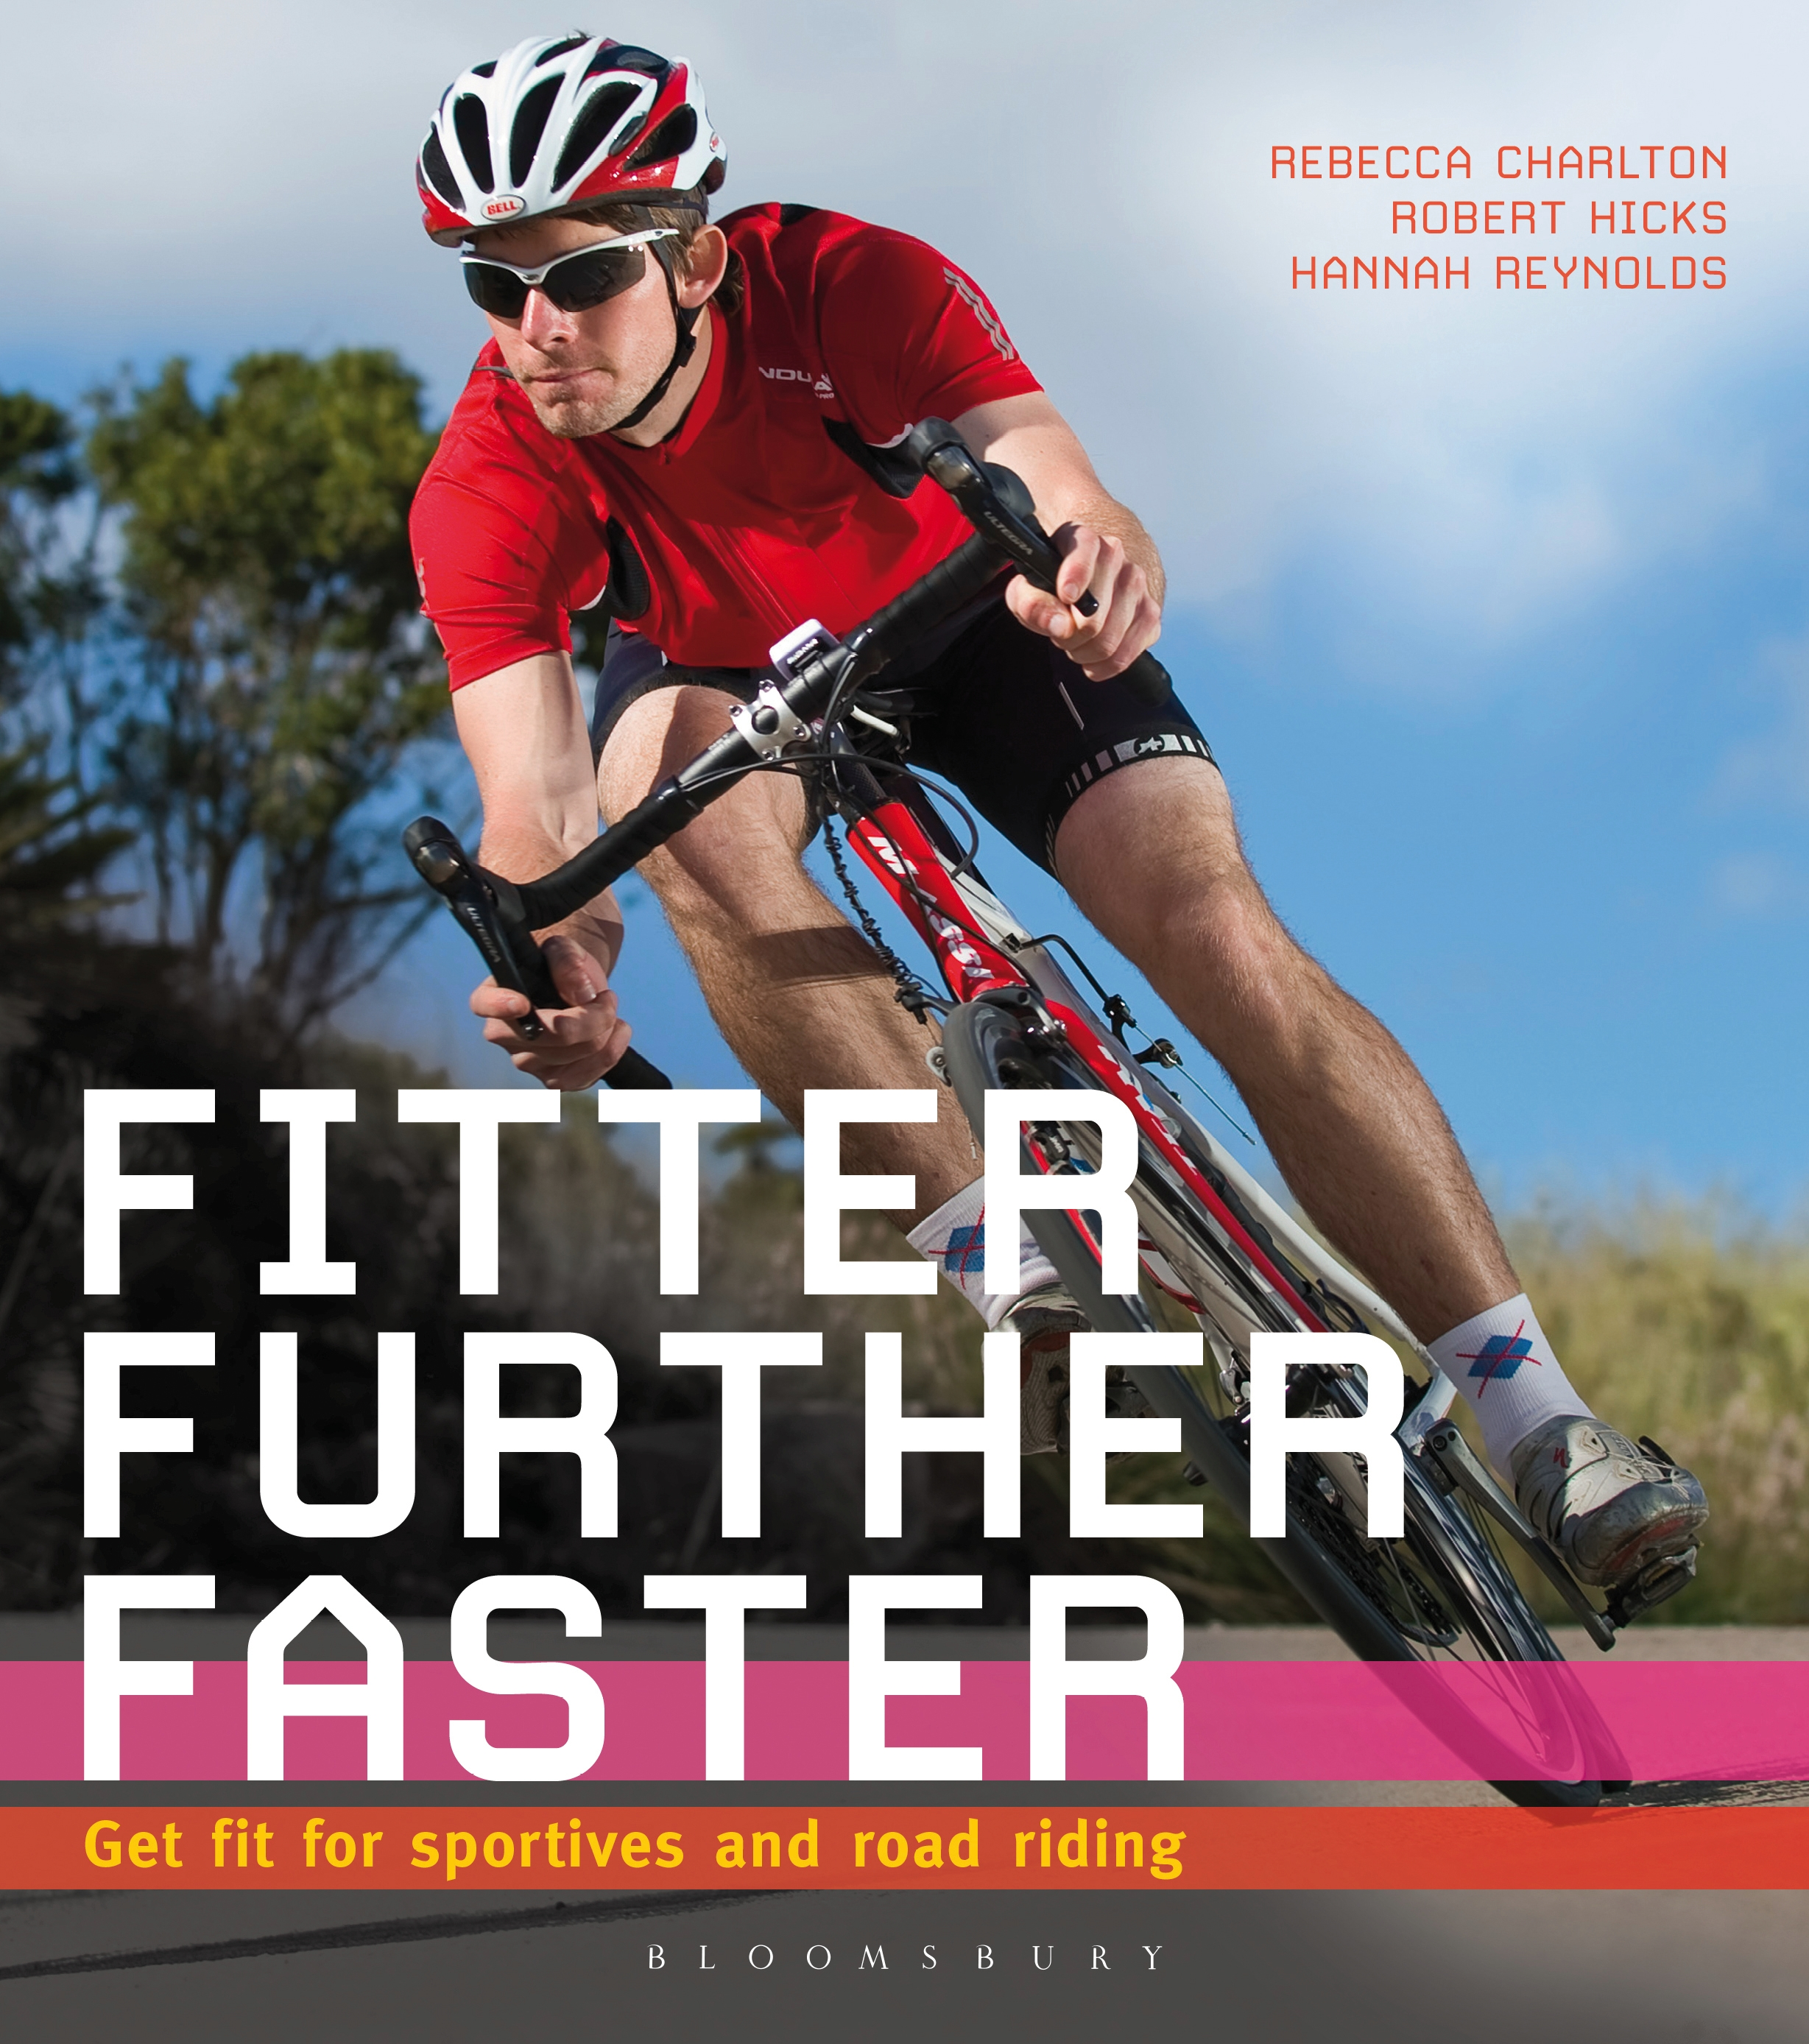 Fitter,  Further,  Faster Get fit for sportives and road riding